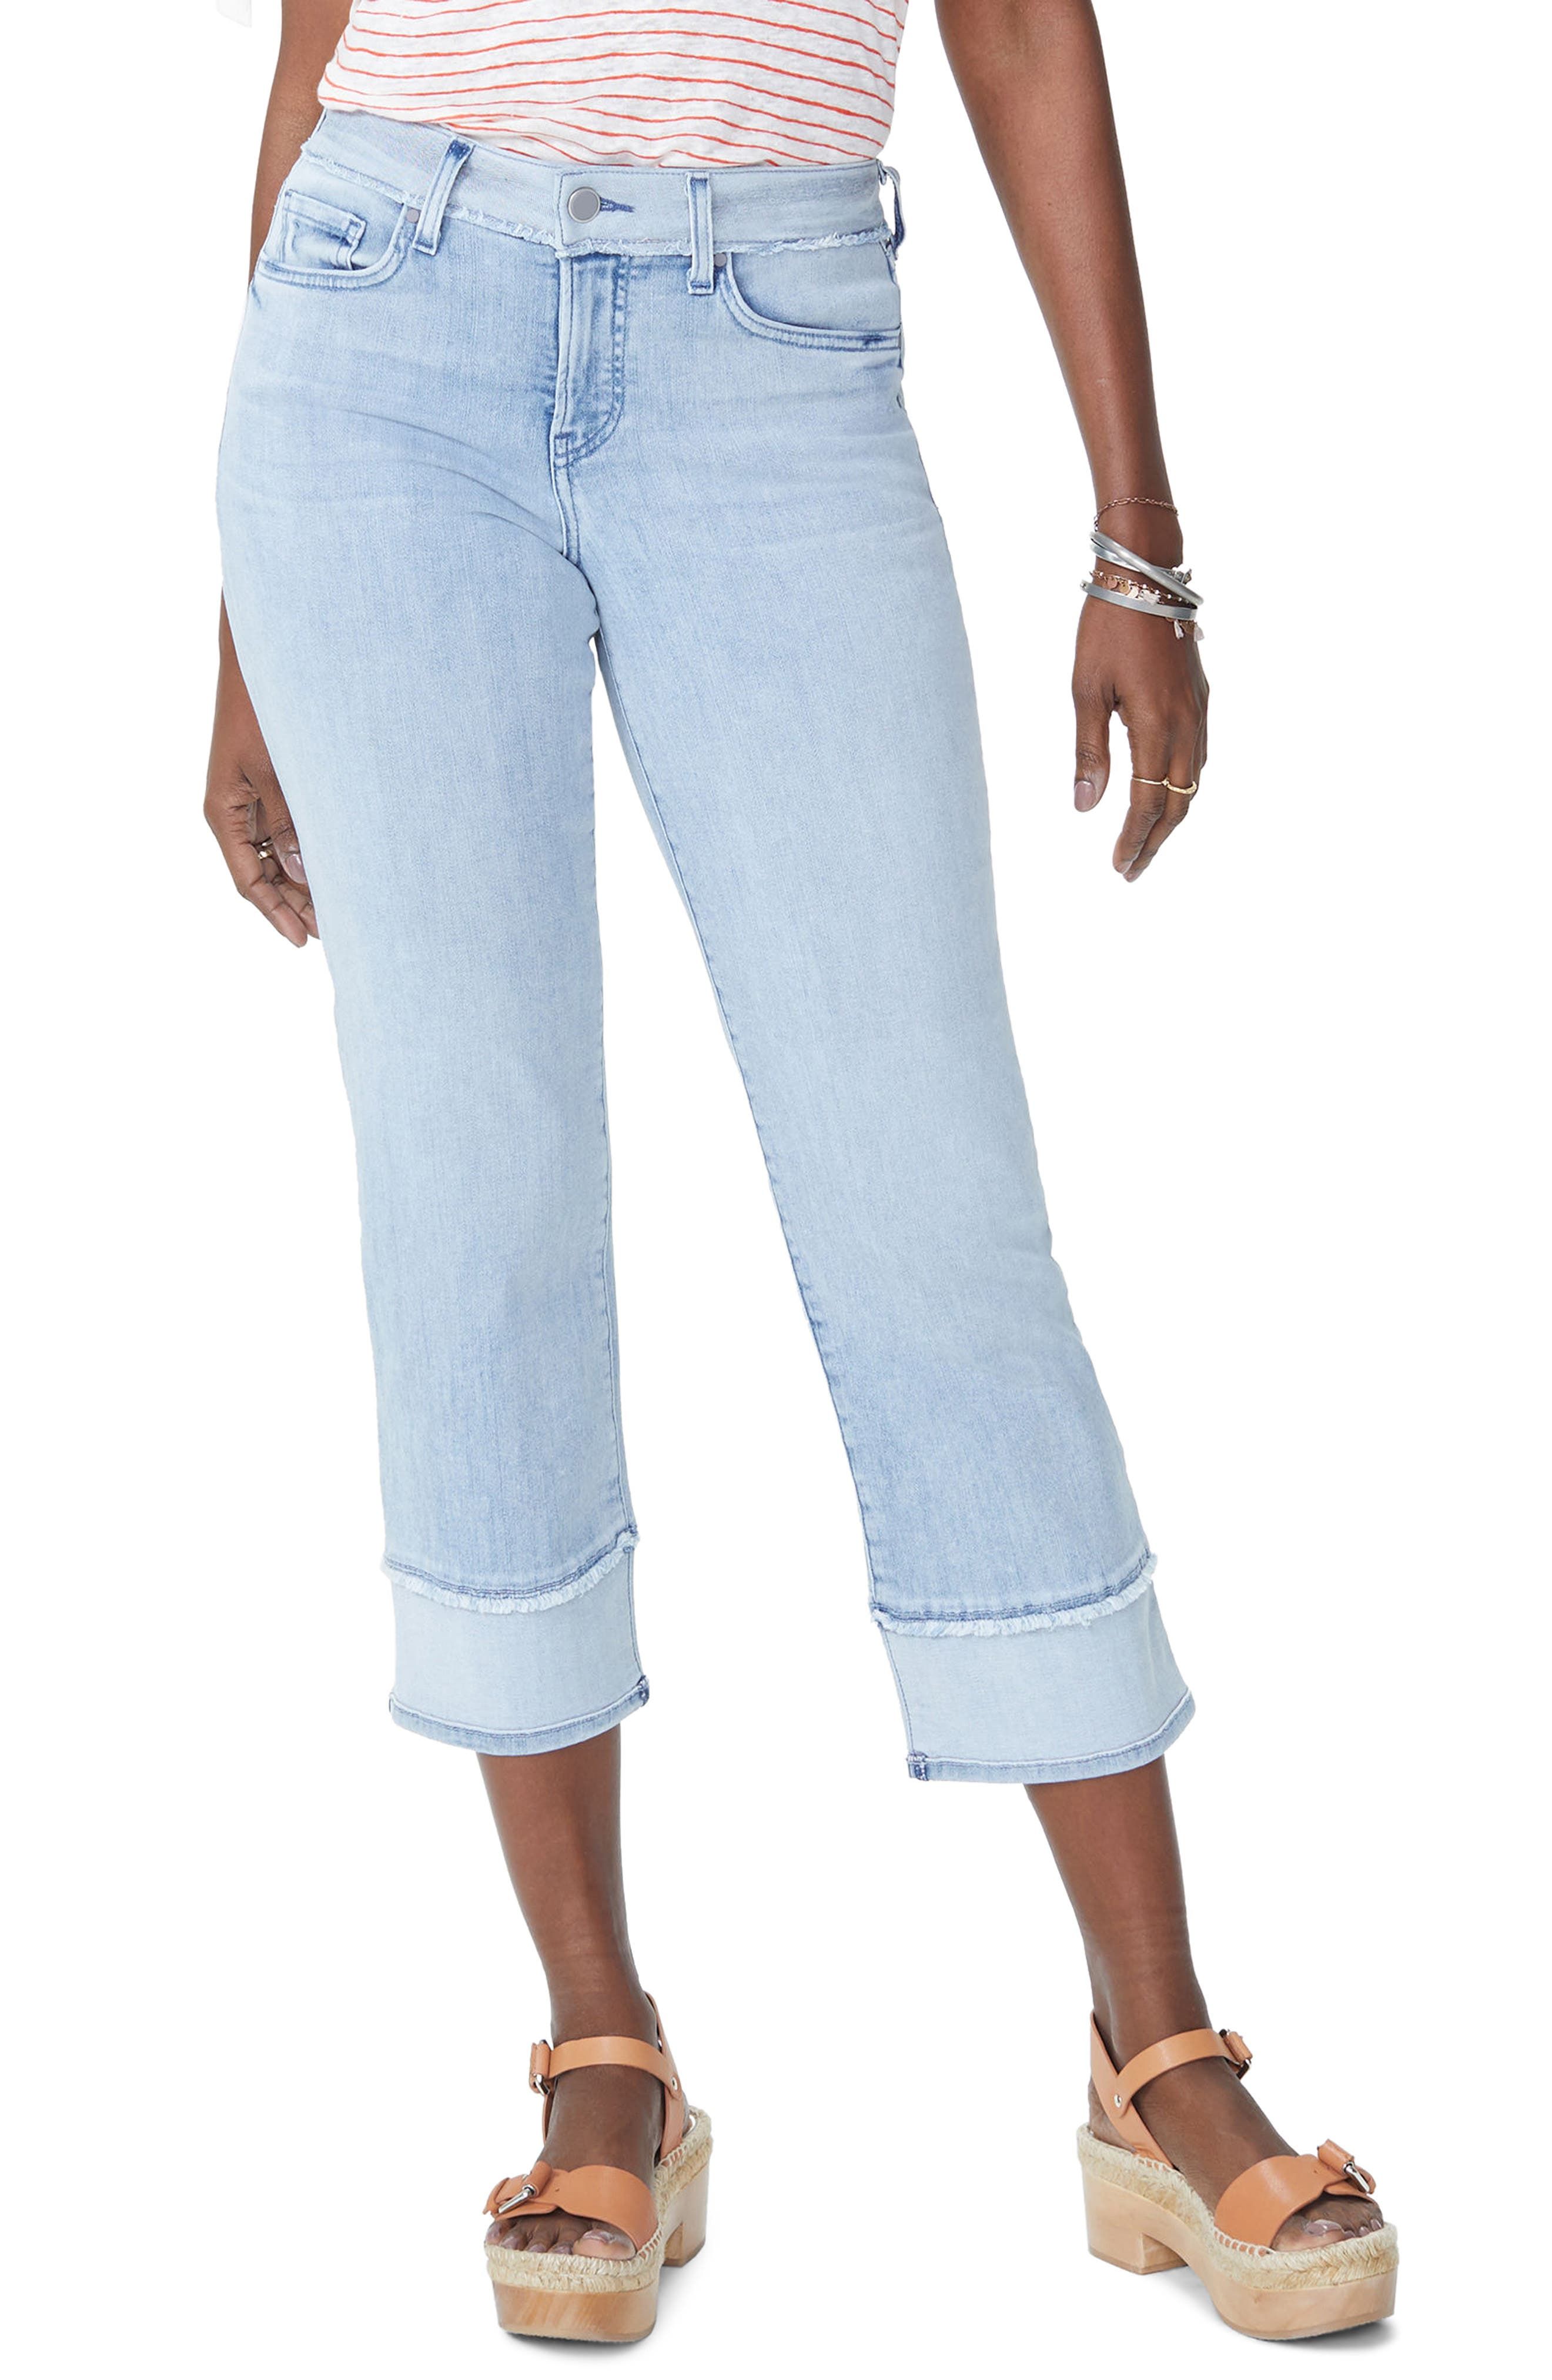 Jenna High Waist Straight Leg Reverse Fray Ankle Jeans,                             Main thumbnail 1, color,                             421